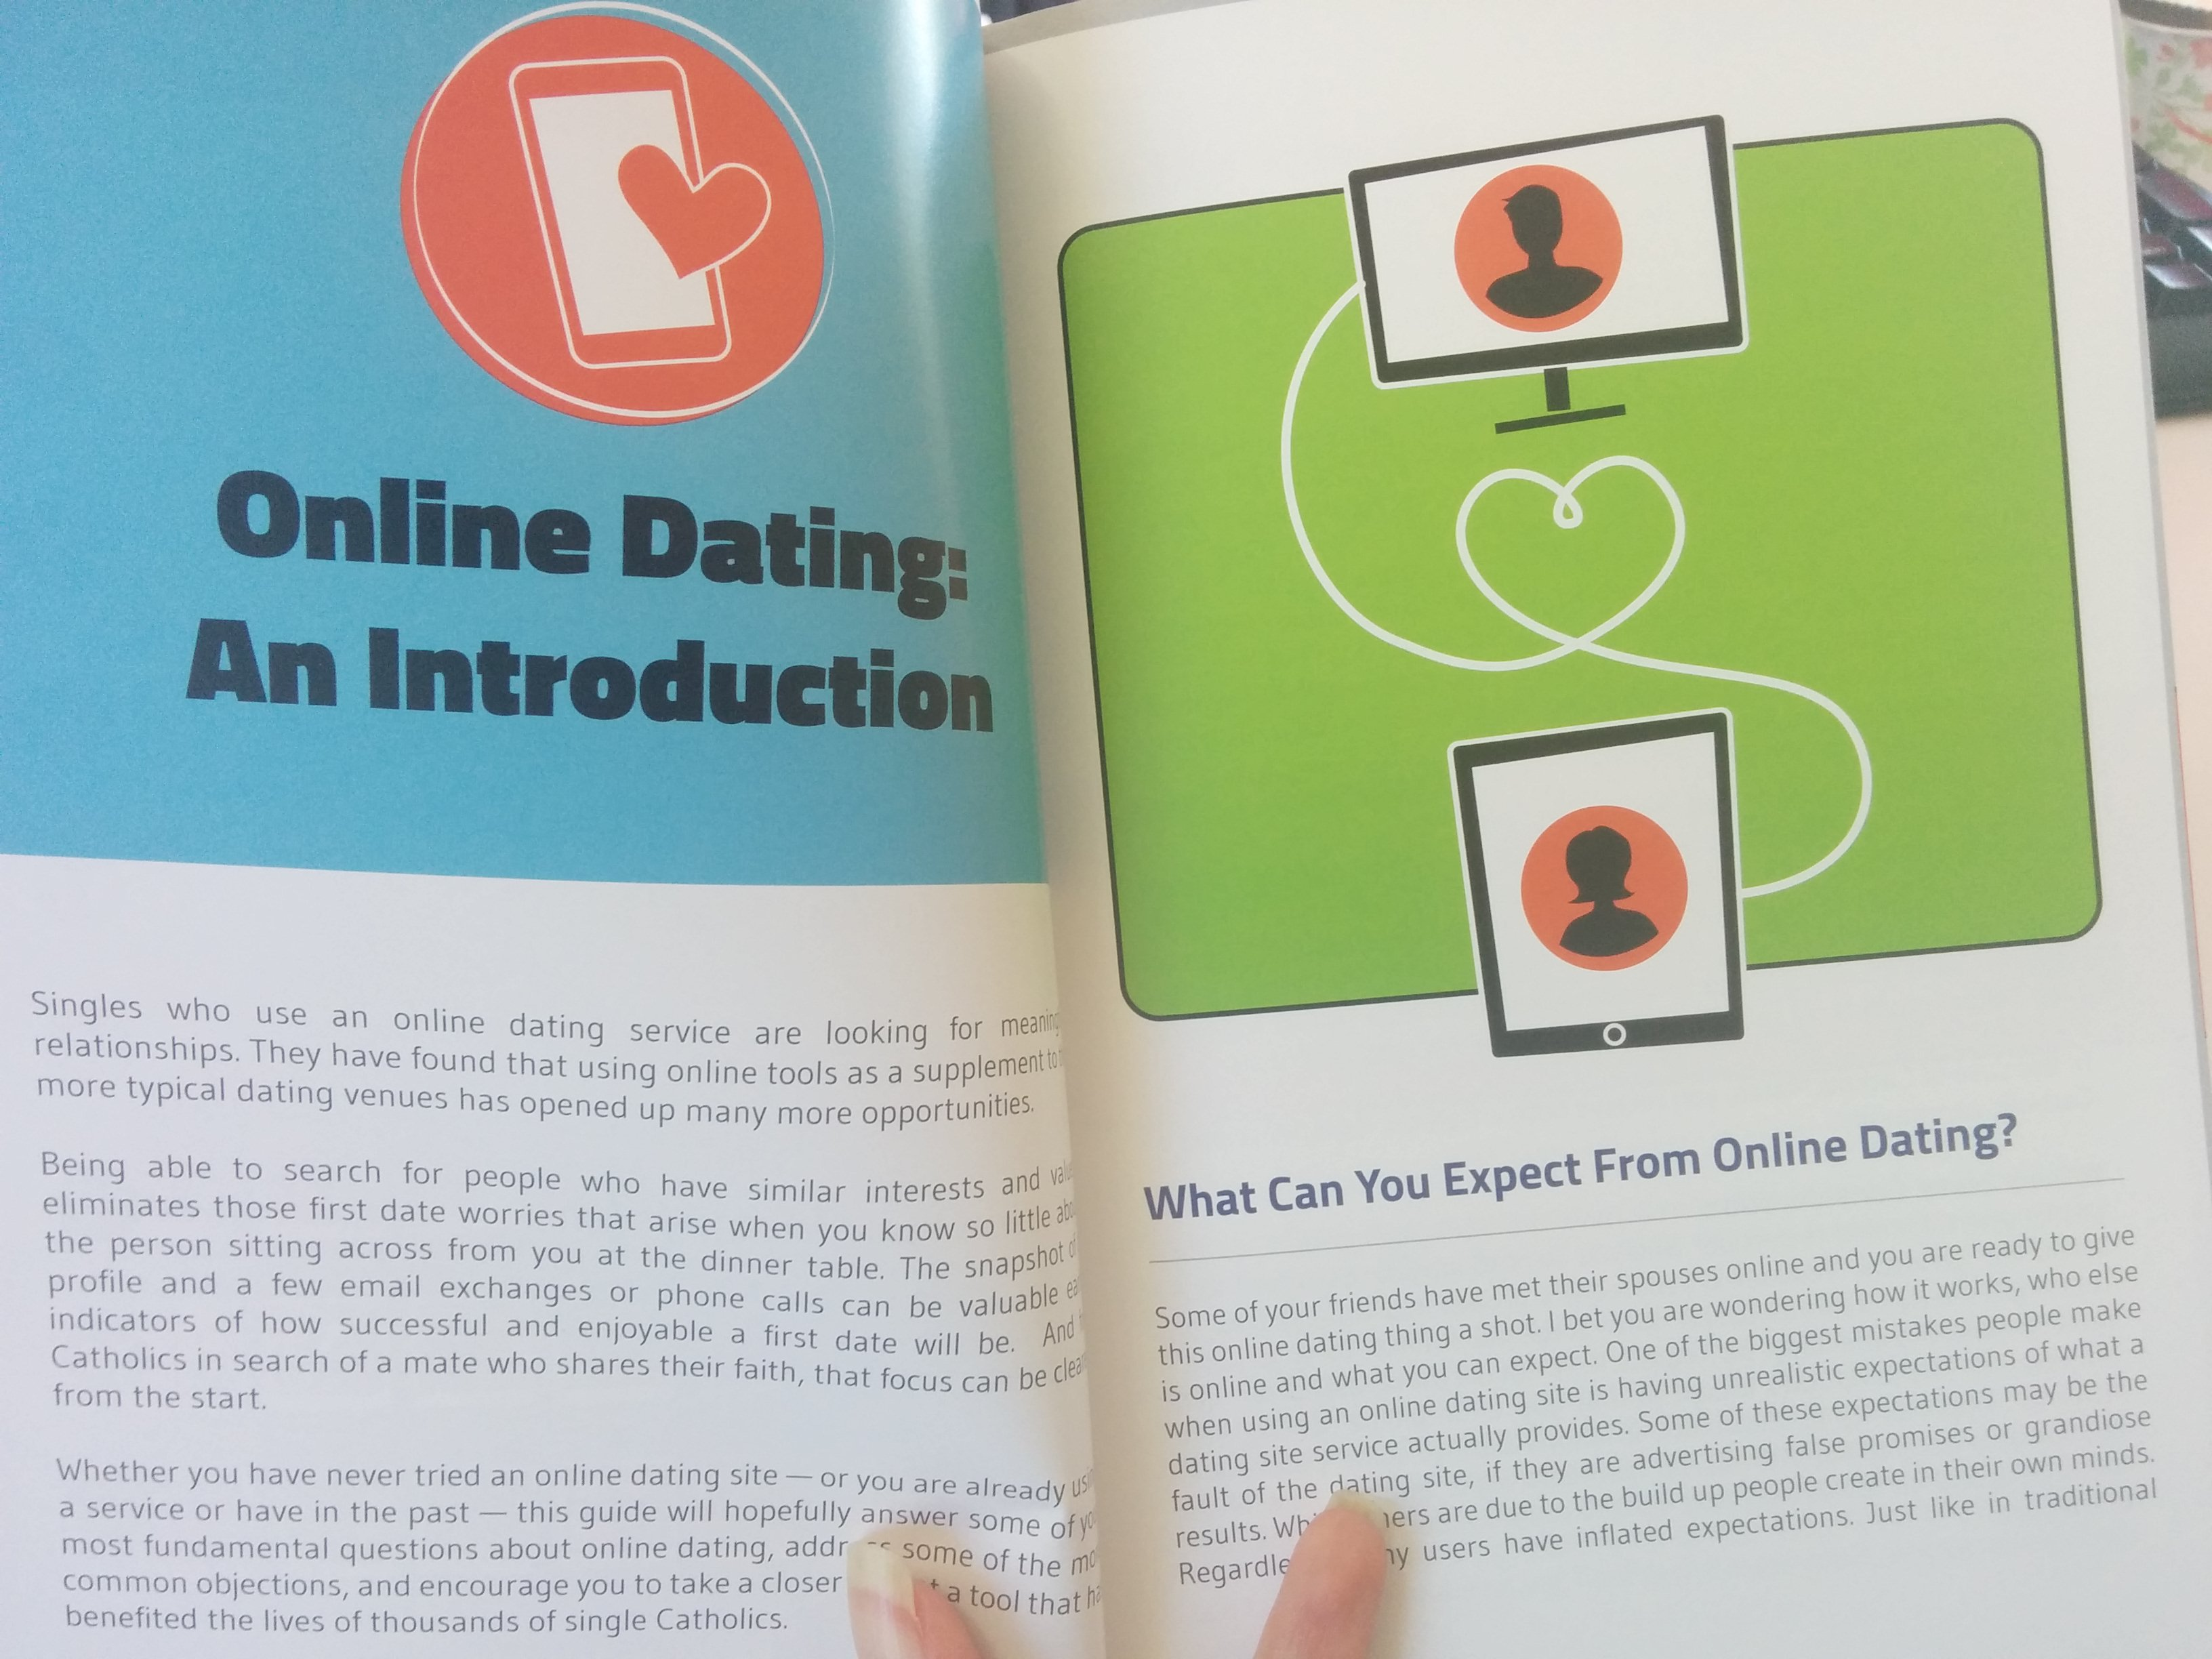 Consumer reviews online dating sites